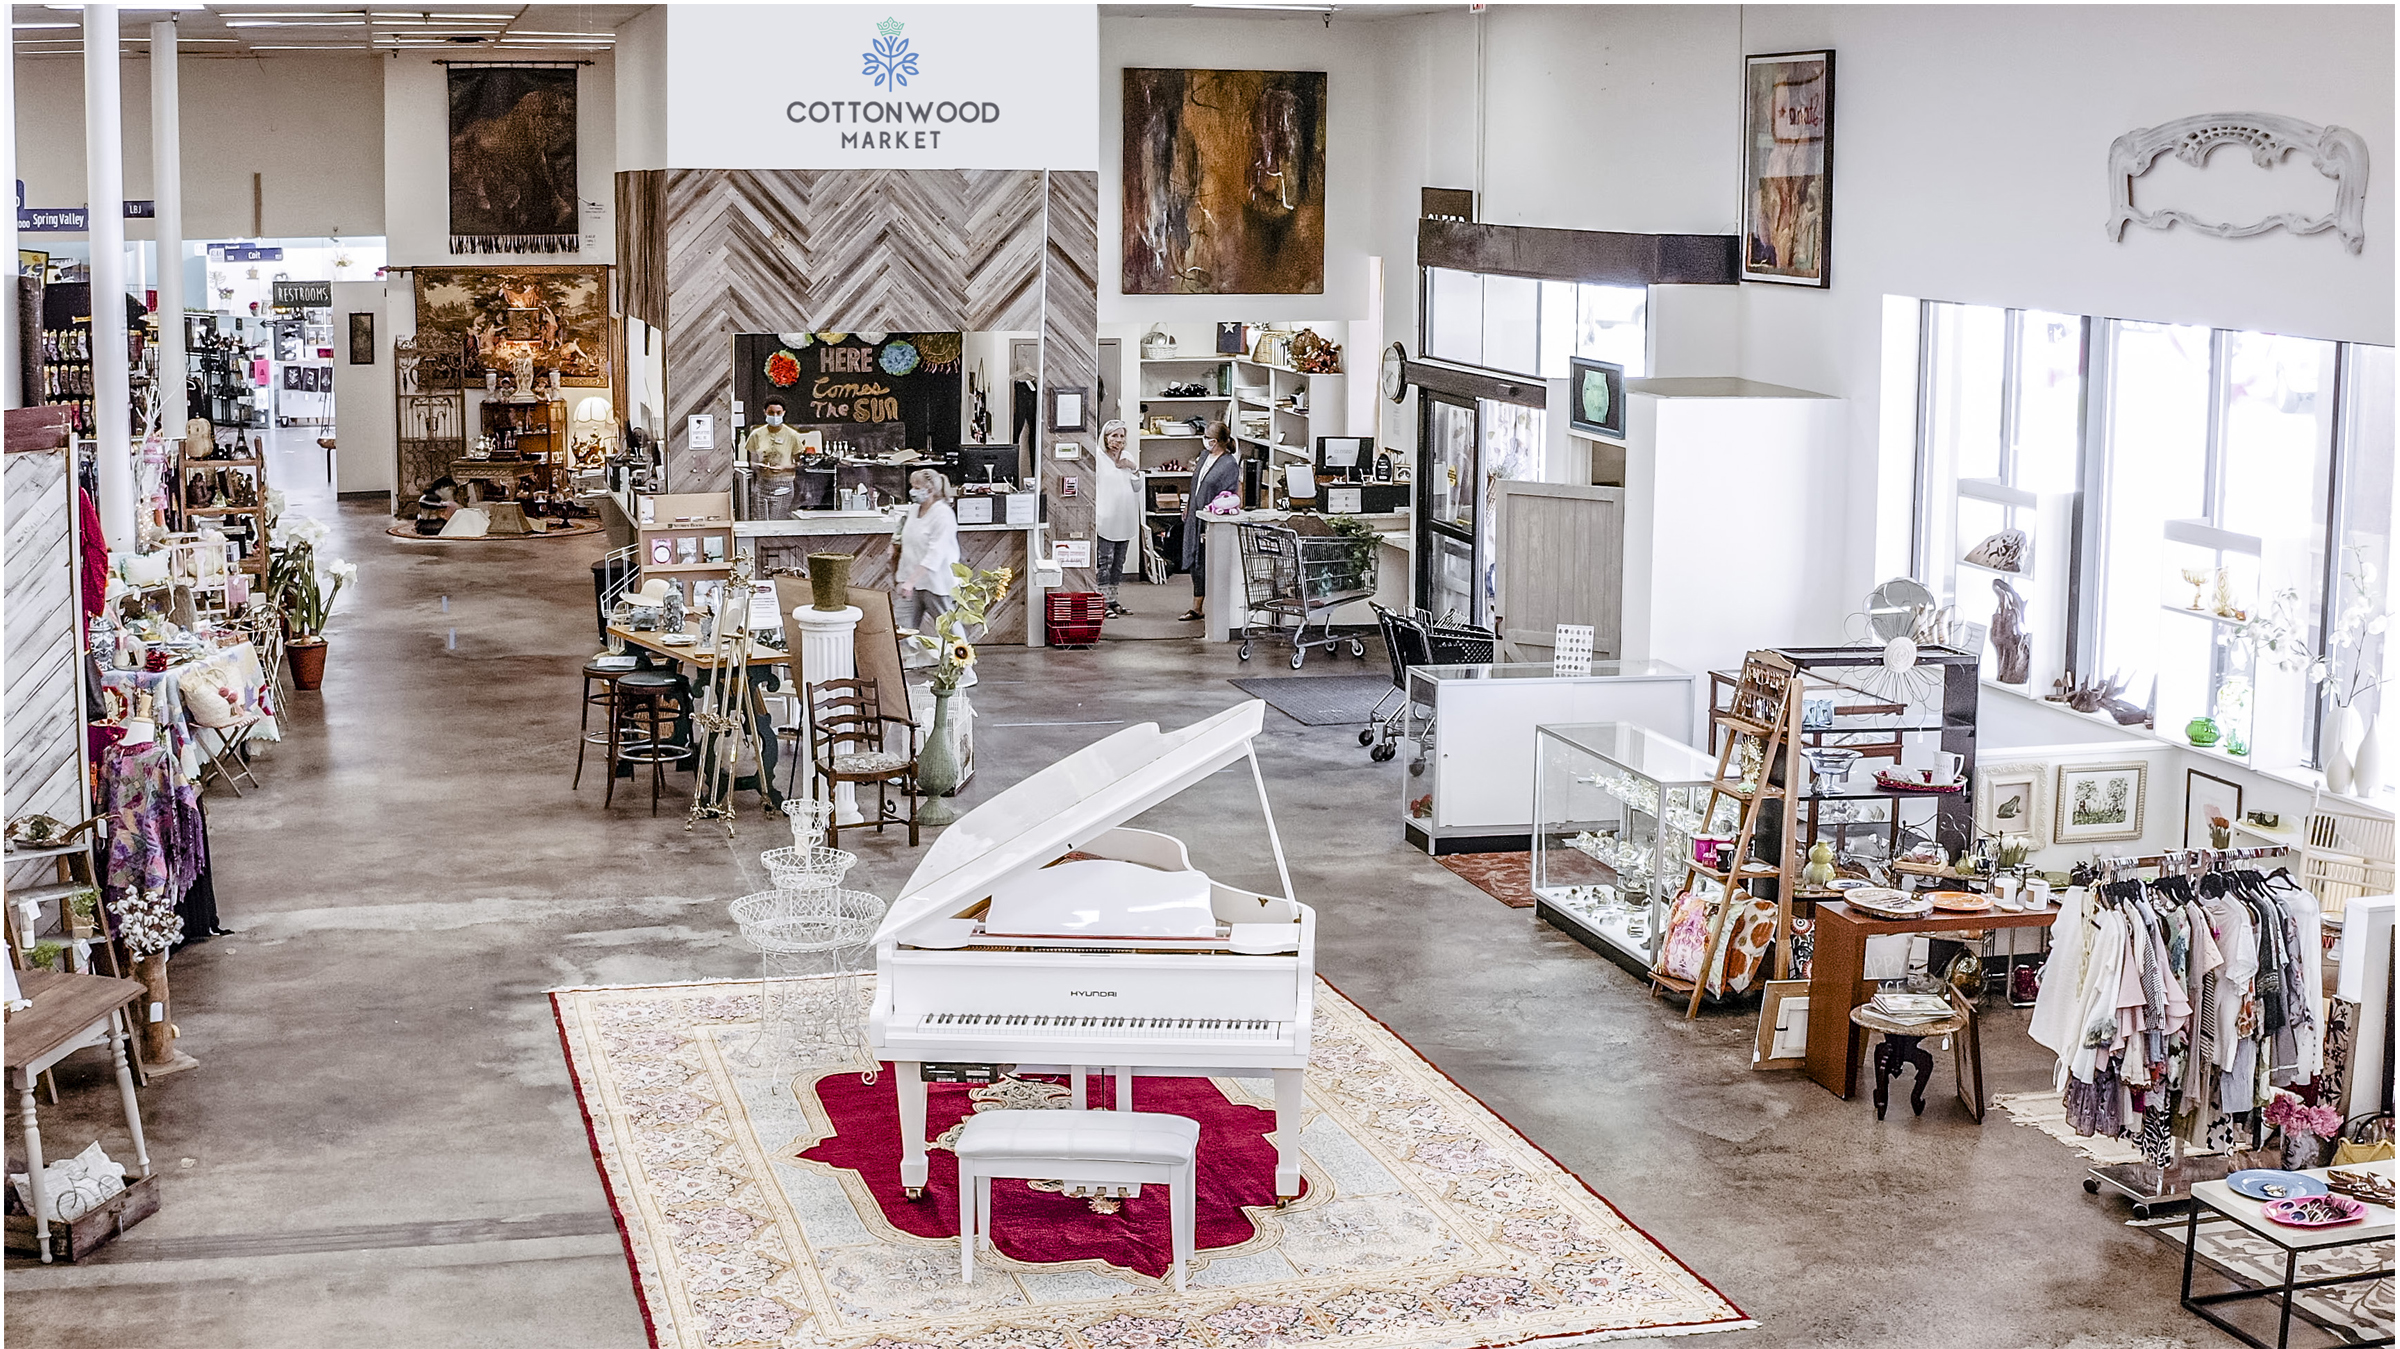 Experience The Excitement of Discovery at Cottonwood Market, A Revitalized Richardson Mercantile